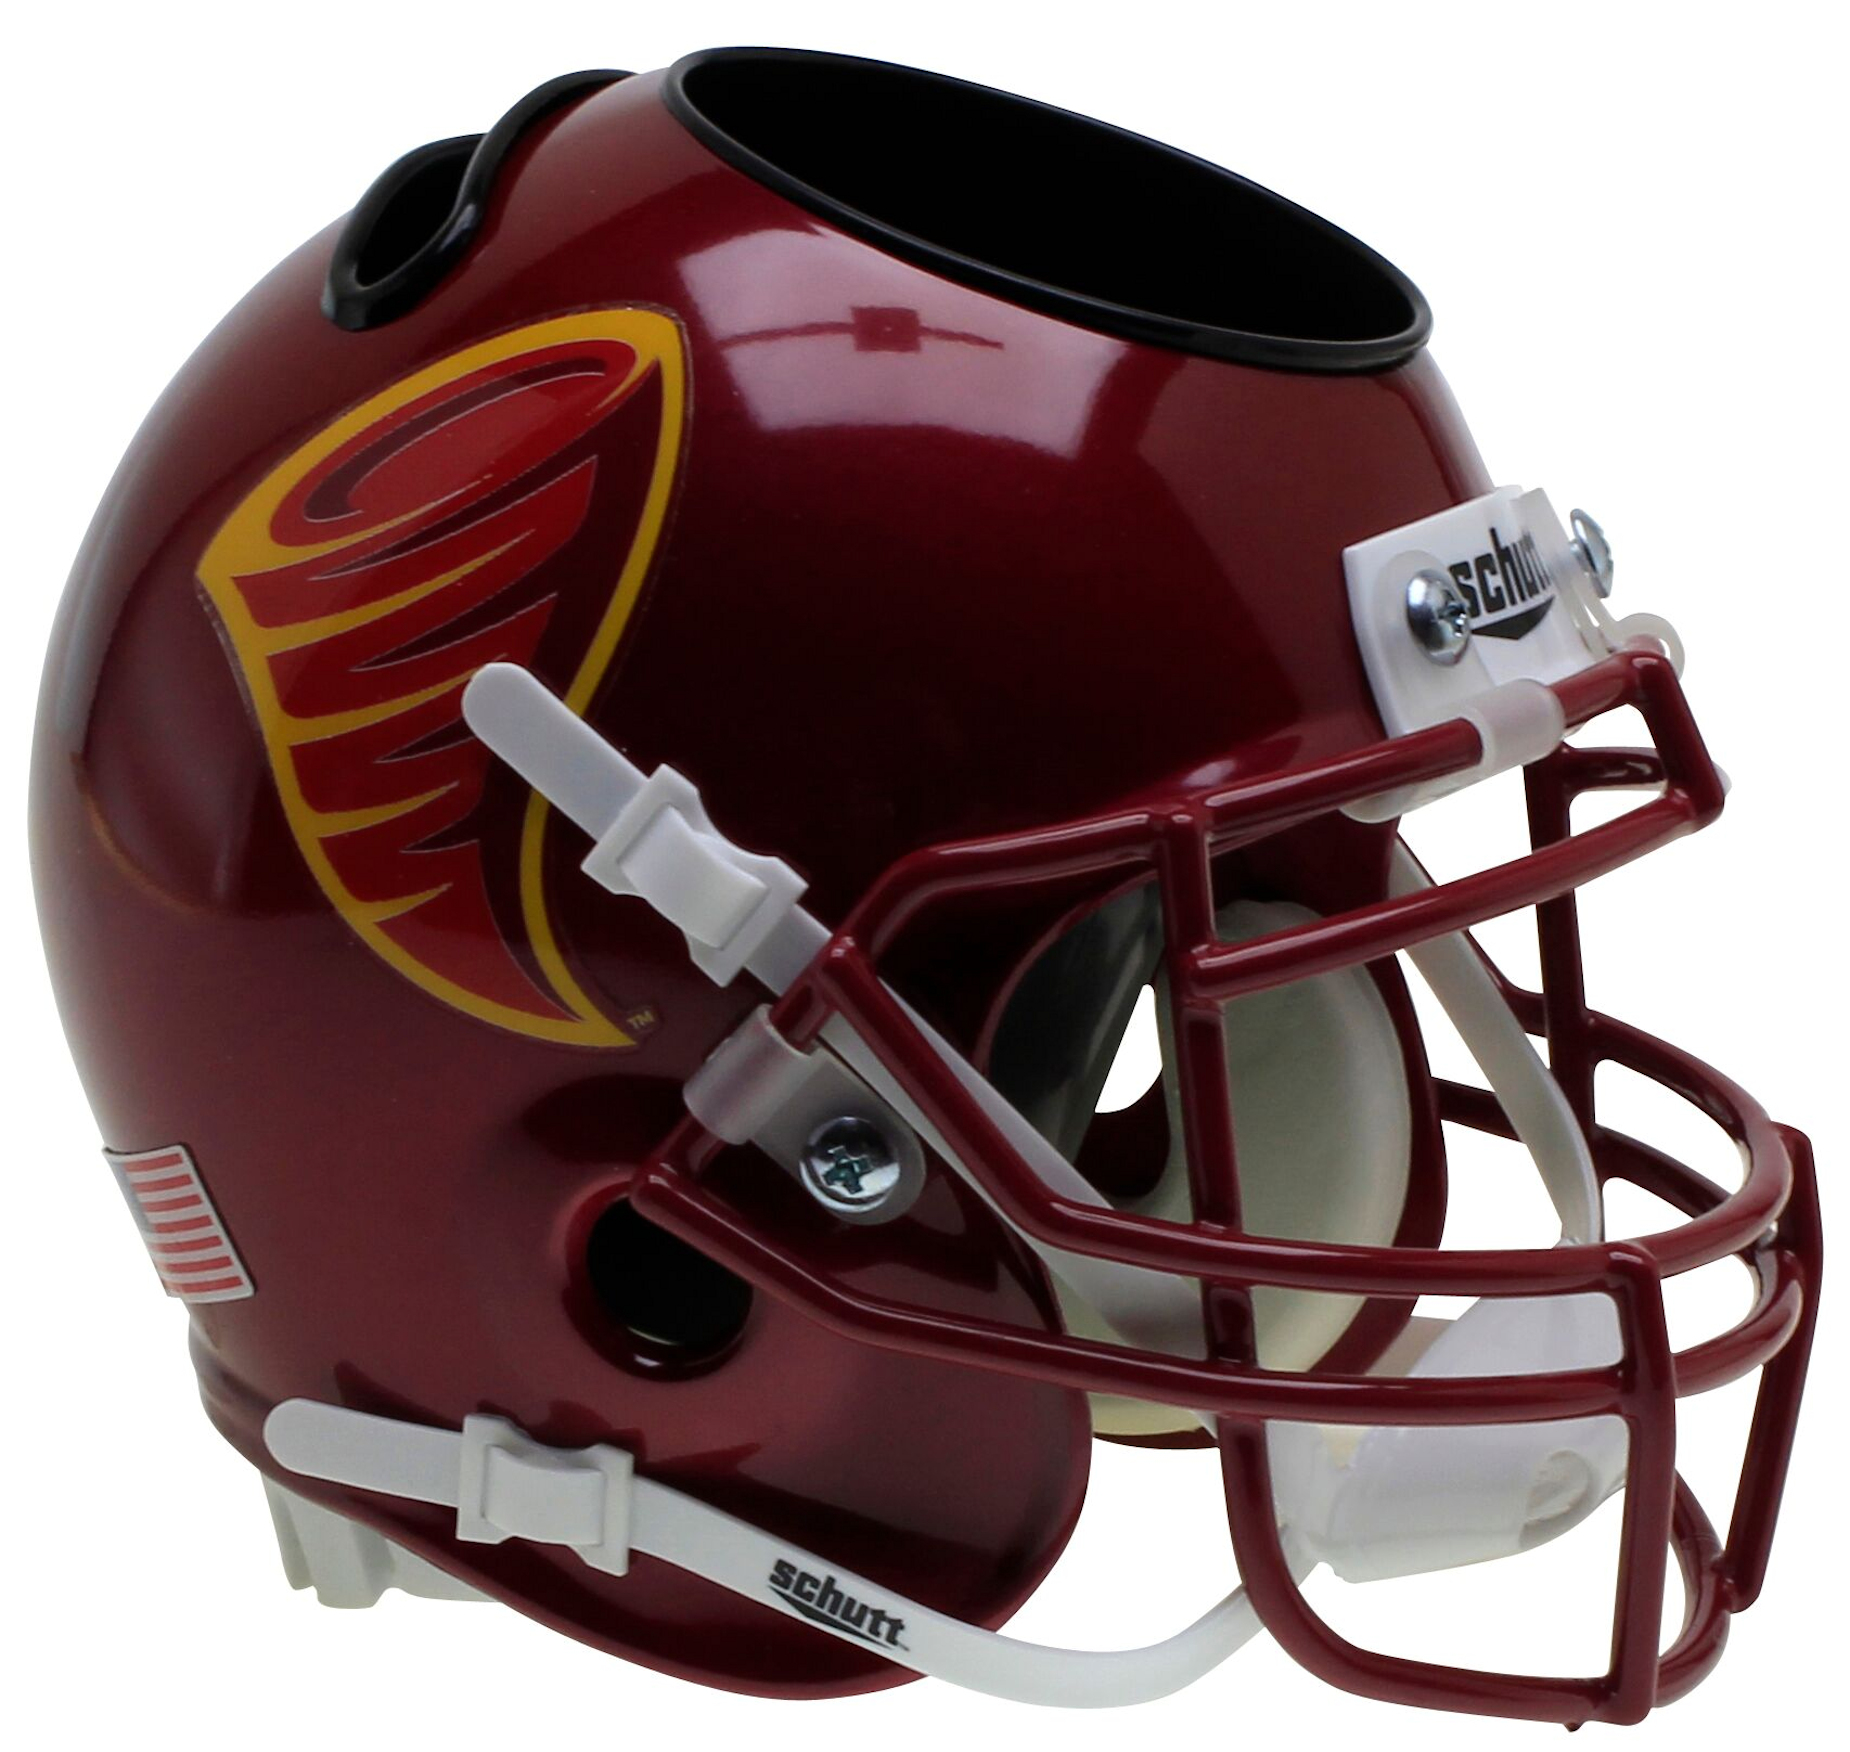 Iowa State Cyclones Miniature Football Helmet Desk Caddy <B>Cyclone</B>